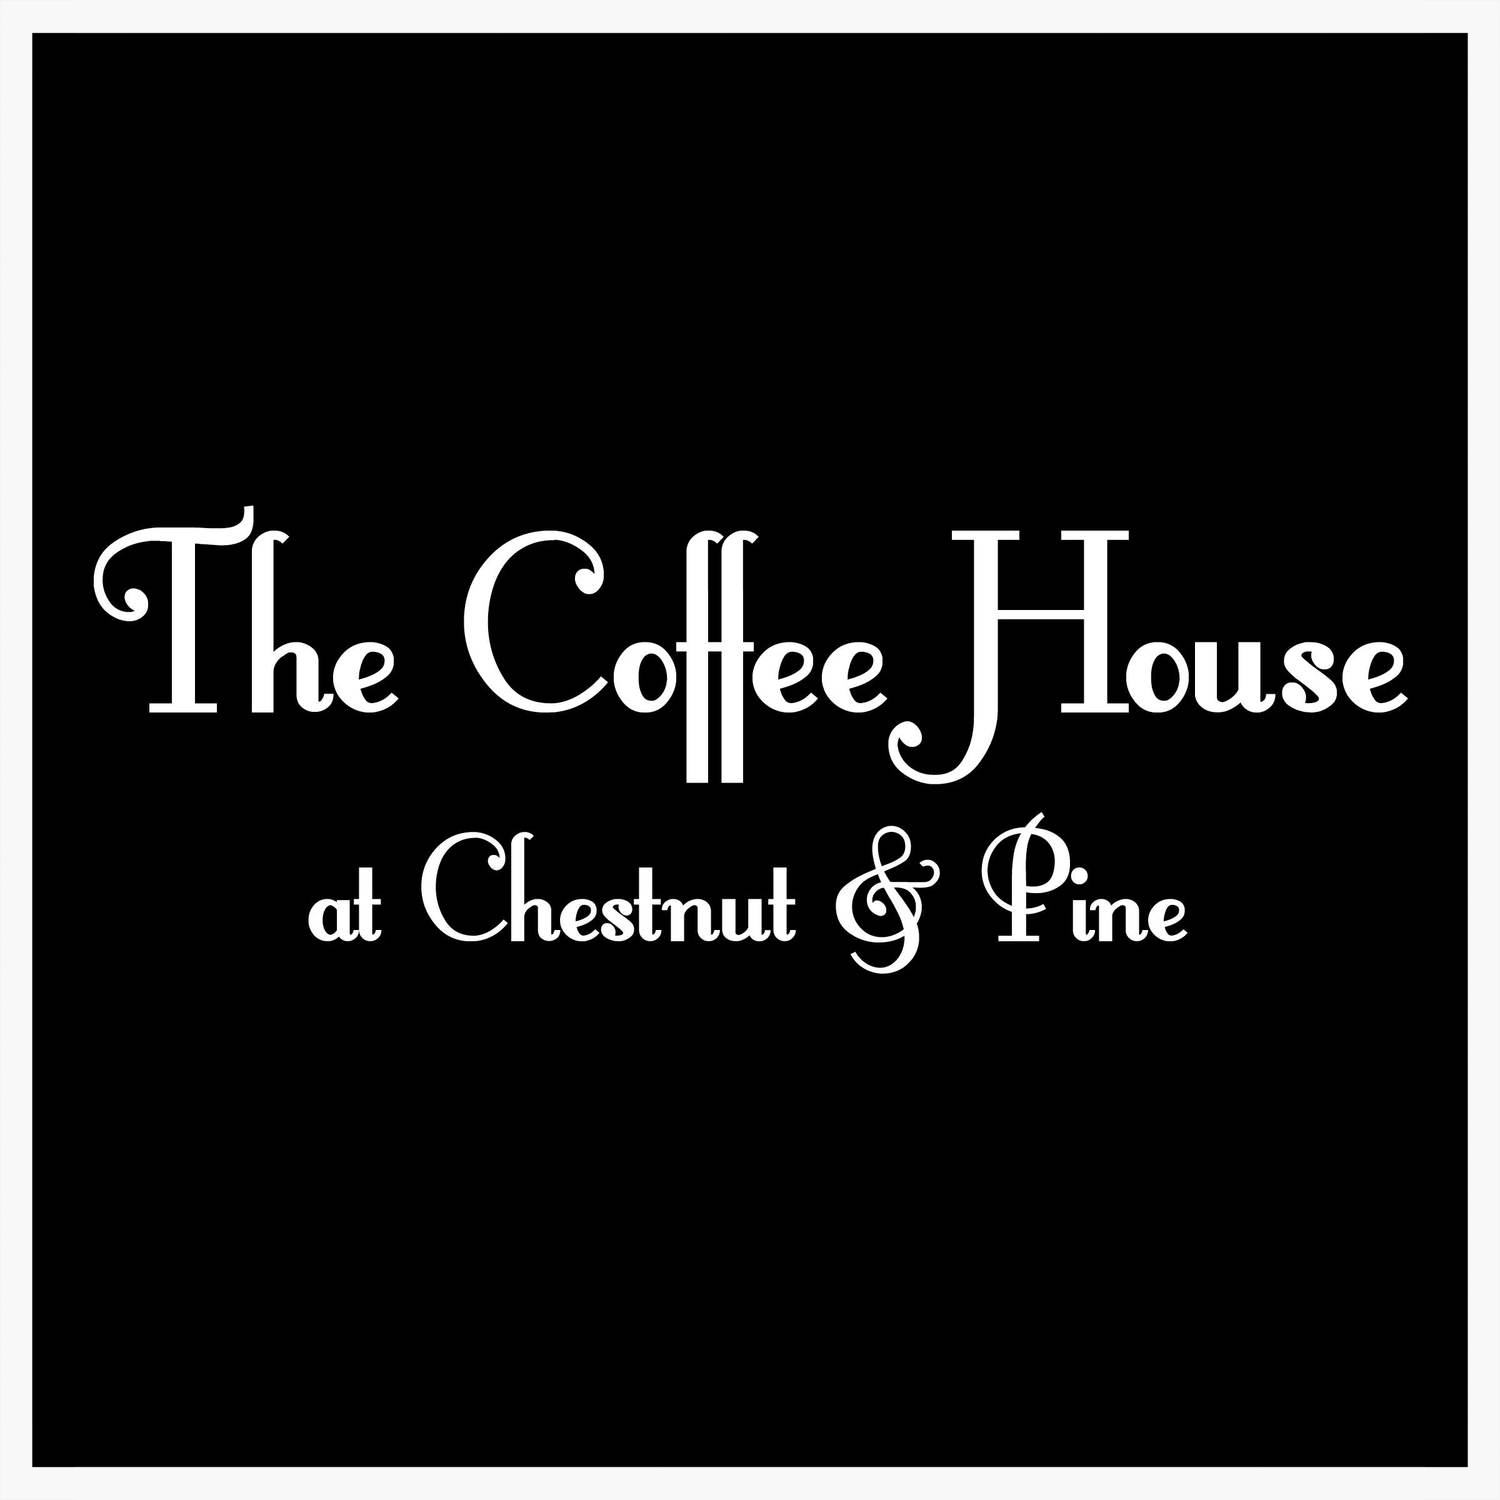 The Coffee House at Chestnut & Pine